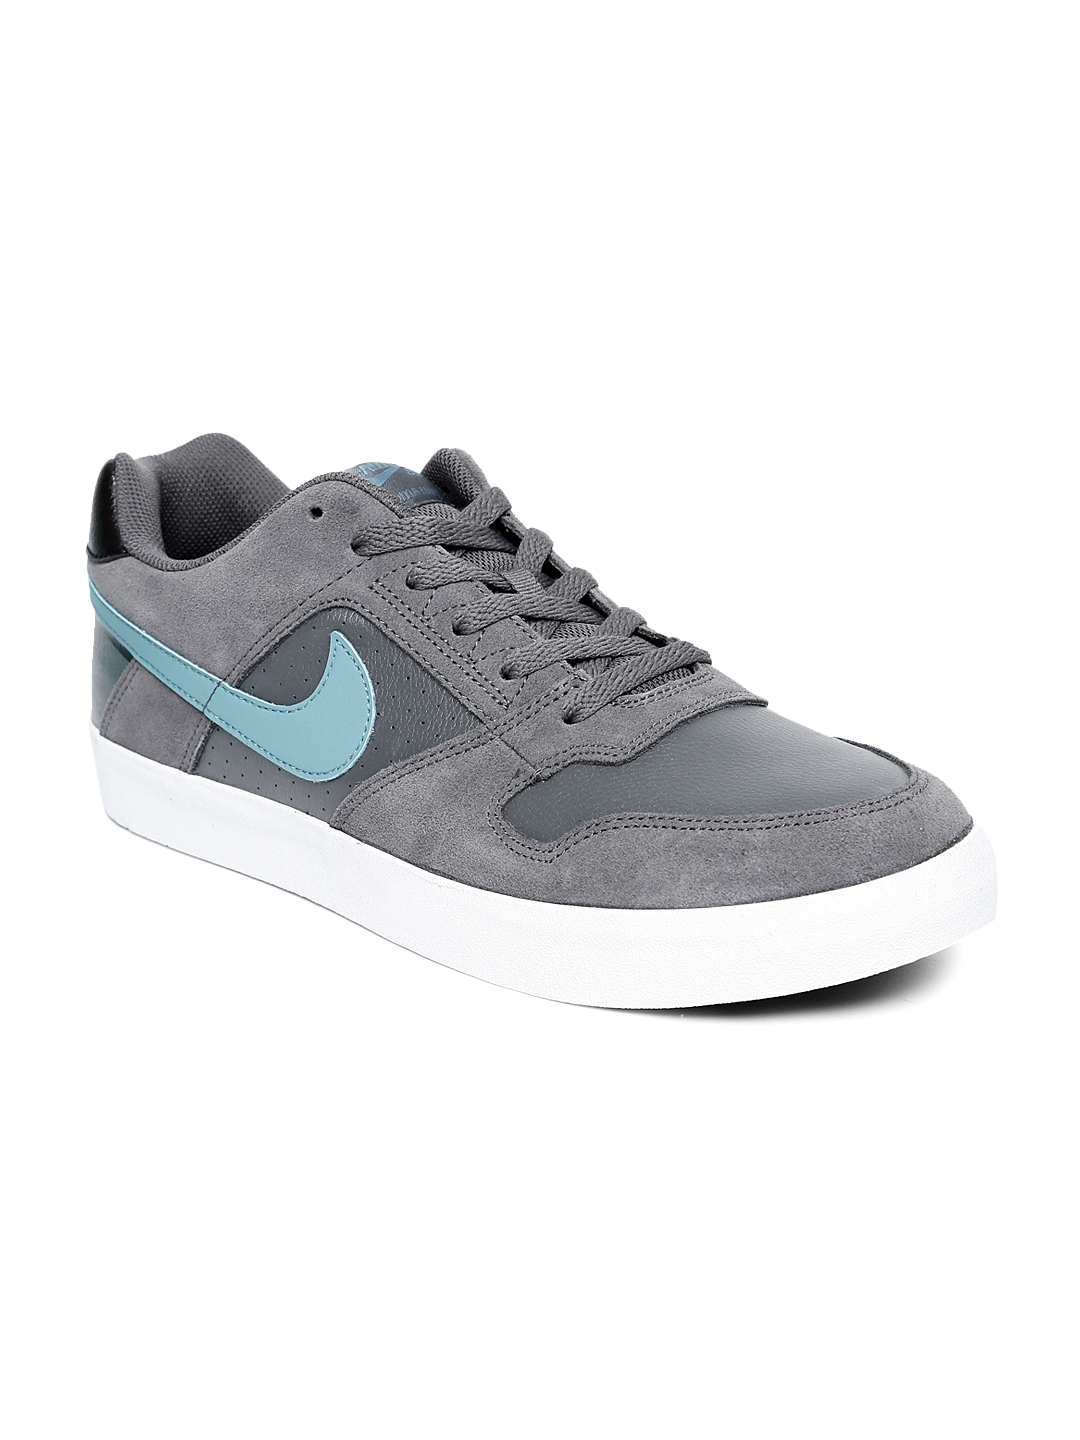 abc79640aab9f0 Buy Nike Men Grey SB DELTA FORCE VULC Suede SkateBoarding Shoes ...